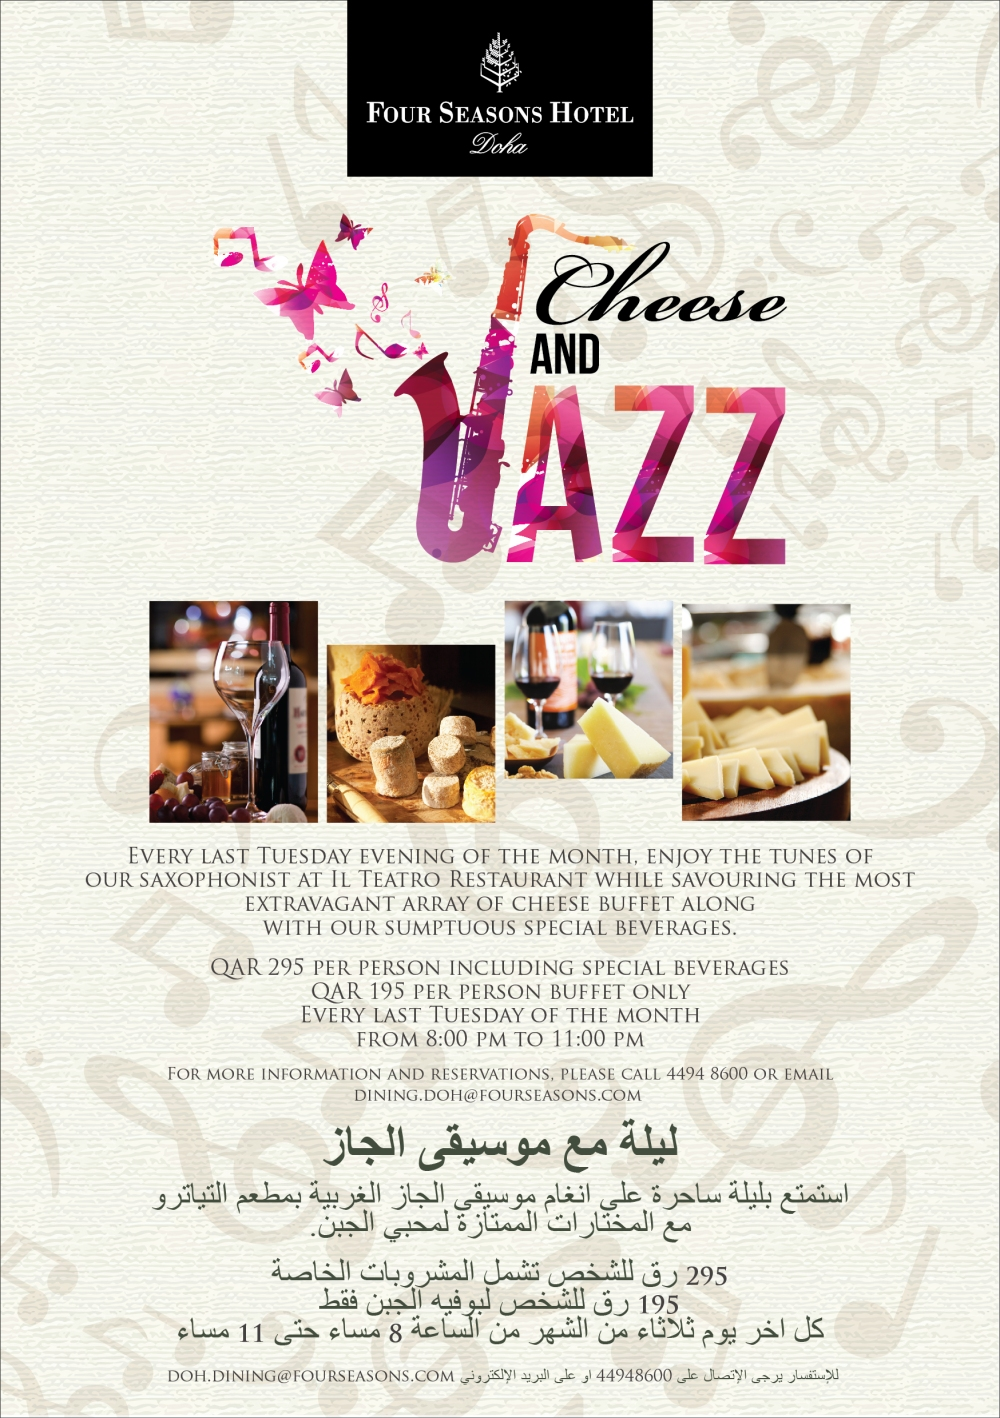 Cheese, Jazz and fabulosity